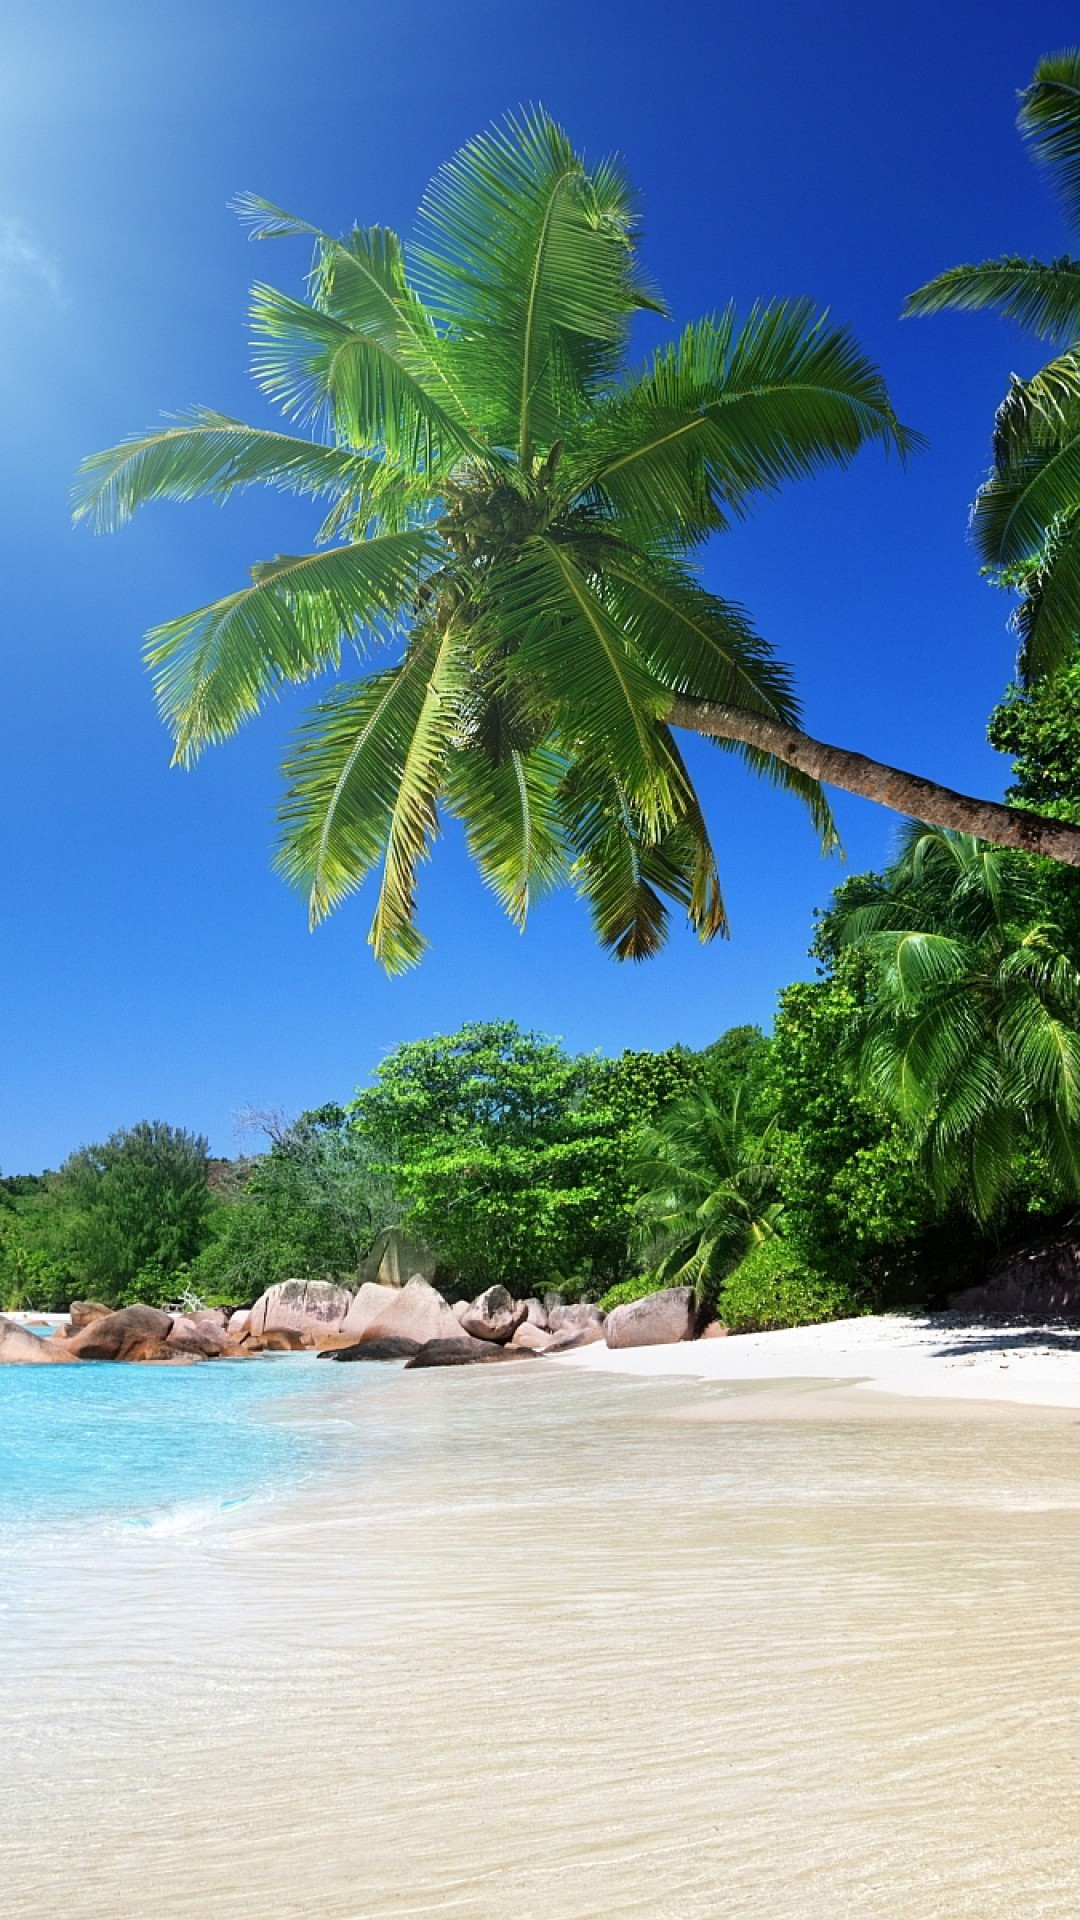 Preview wallpaper beach, sand, palm trees, tropical 1080×1920